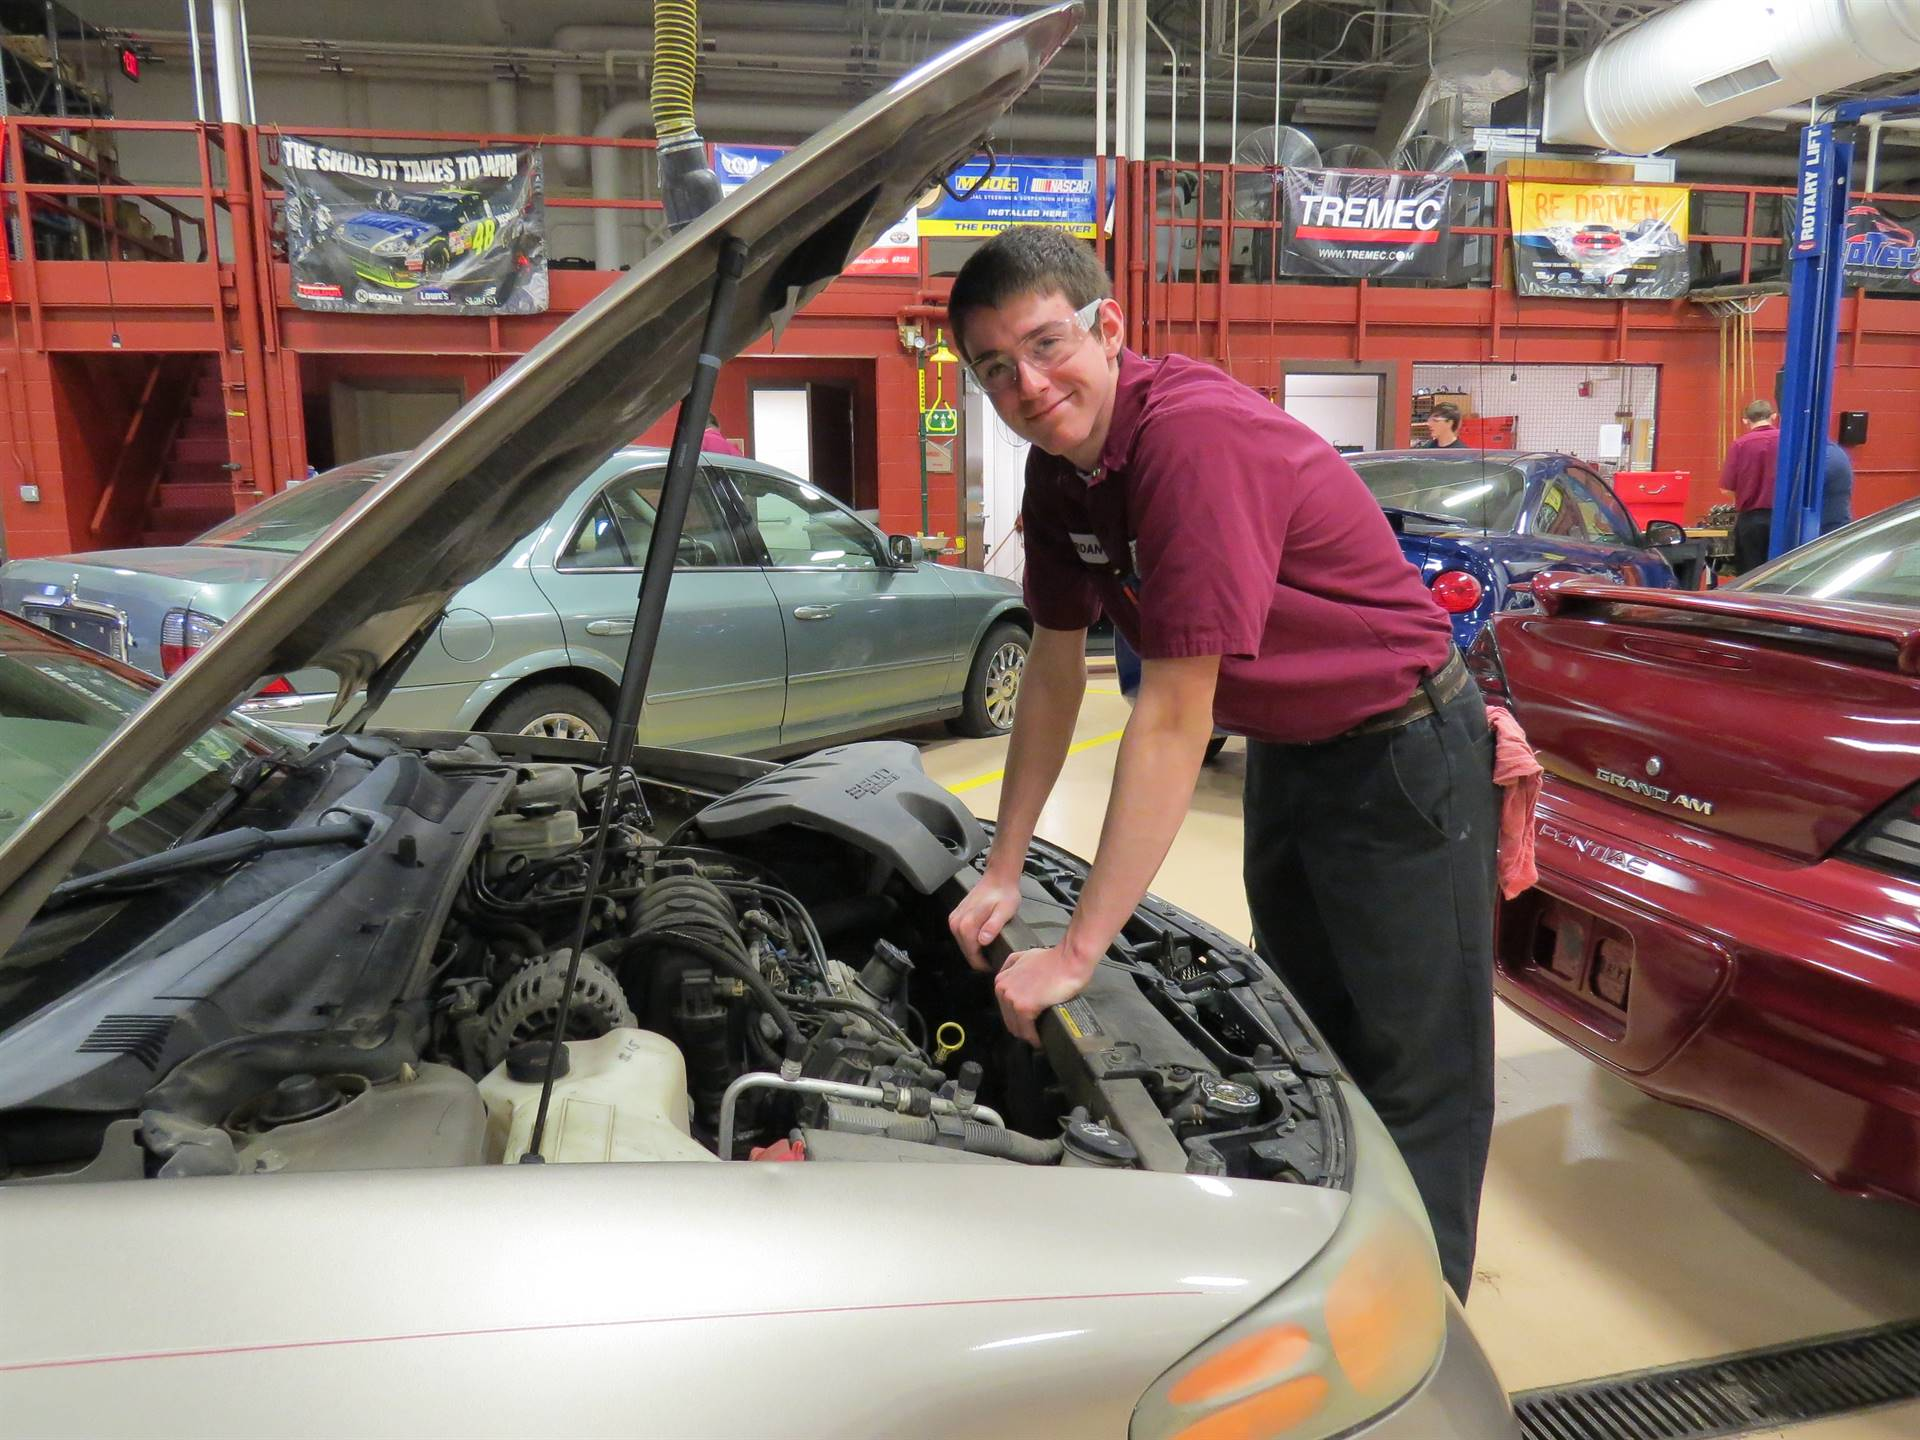 Auto Technology student is working on a vehicle.